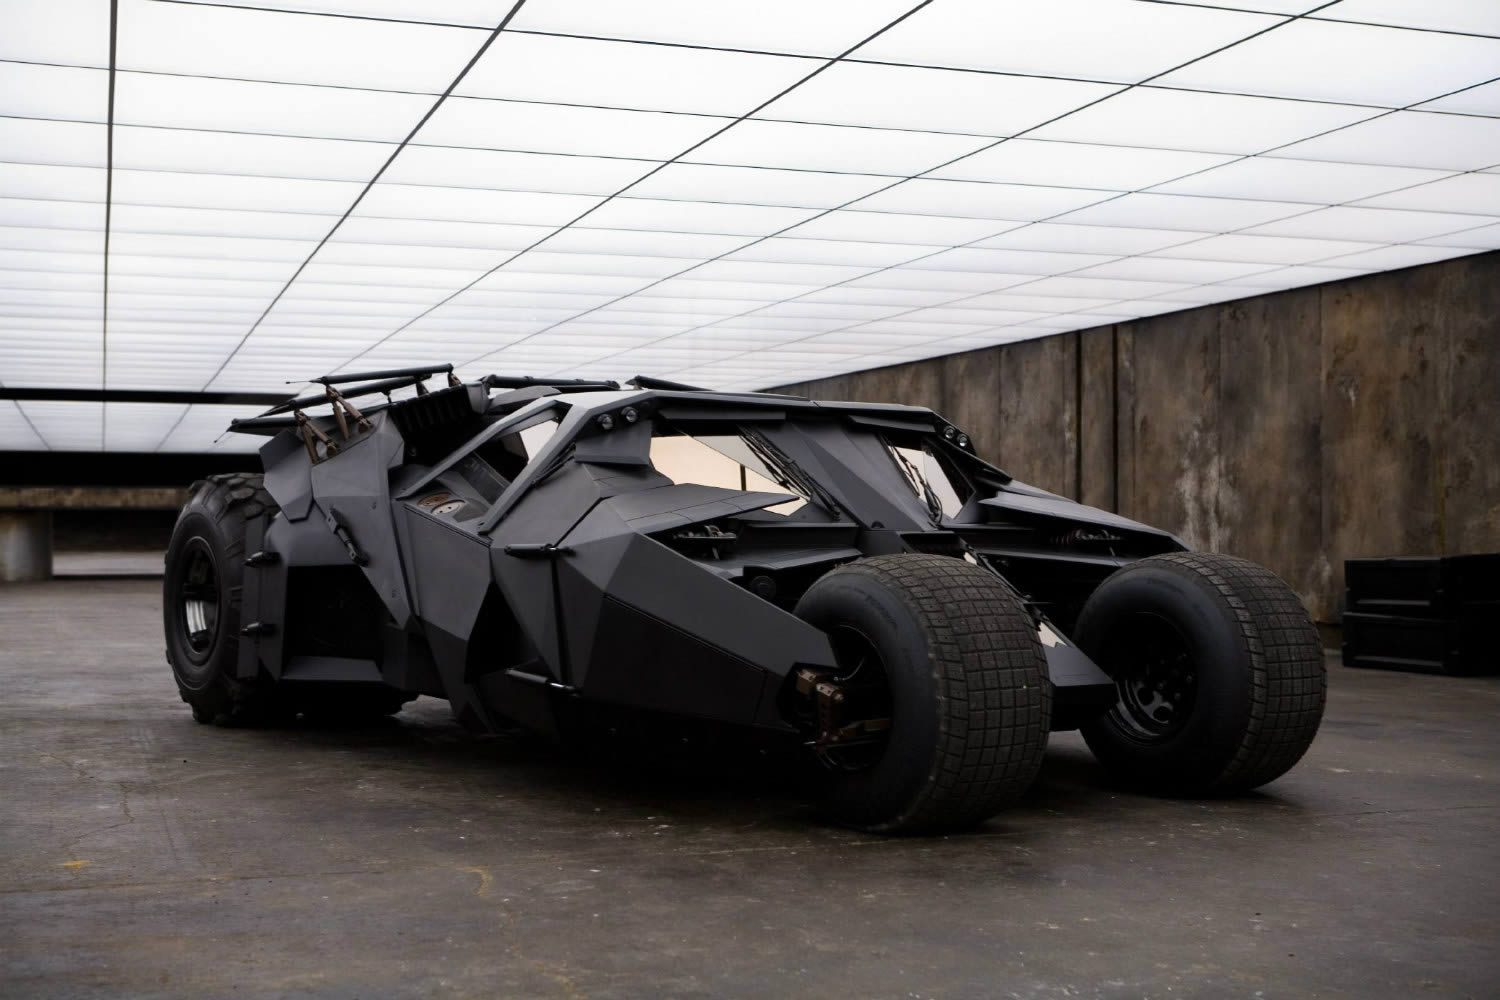 Batman Begins – The Tumbler